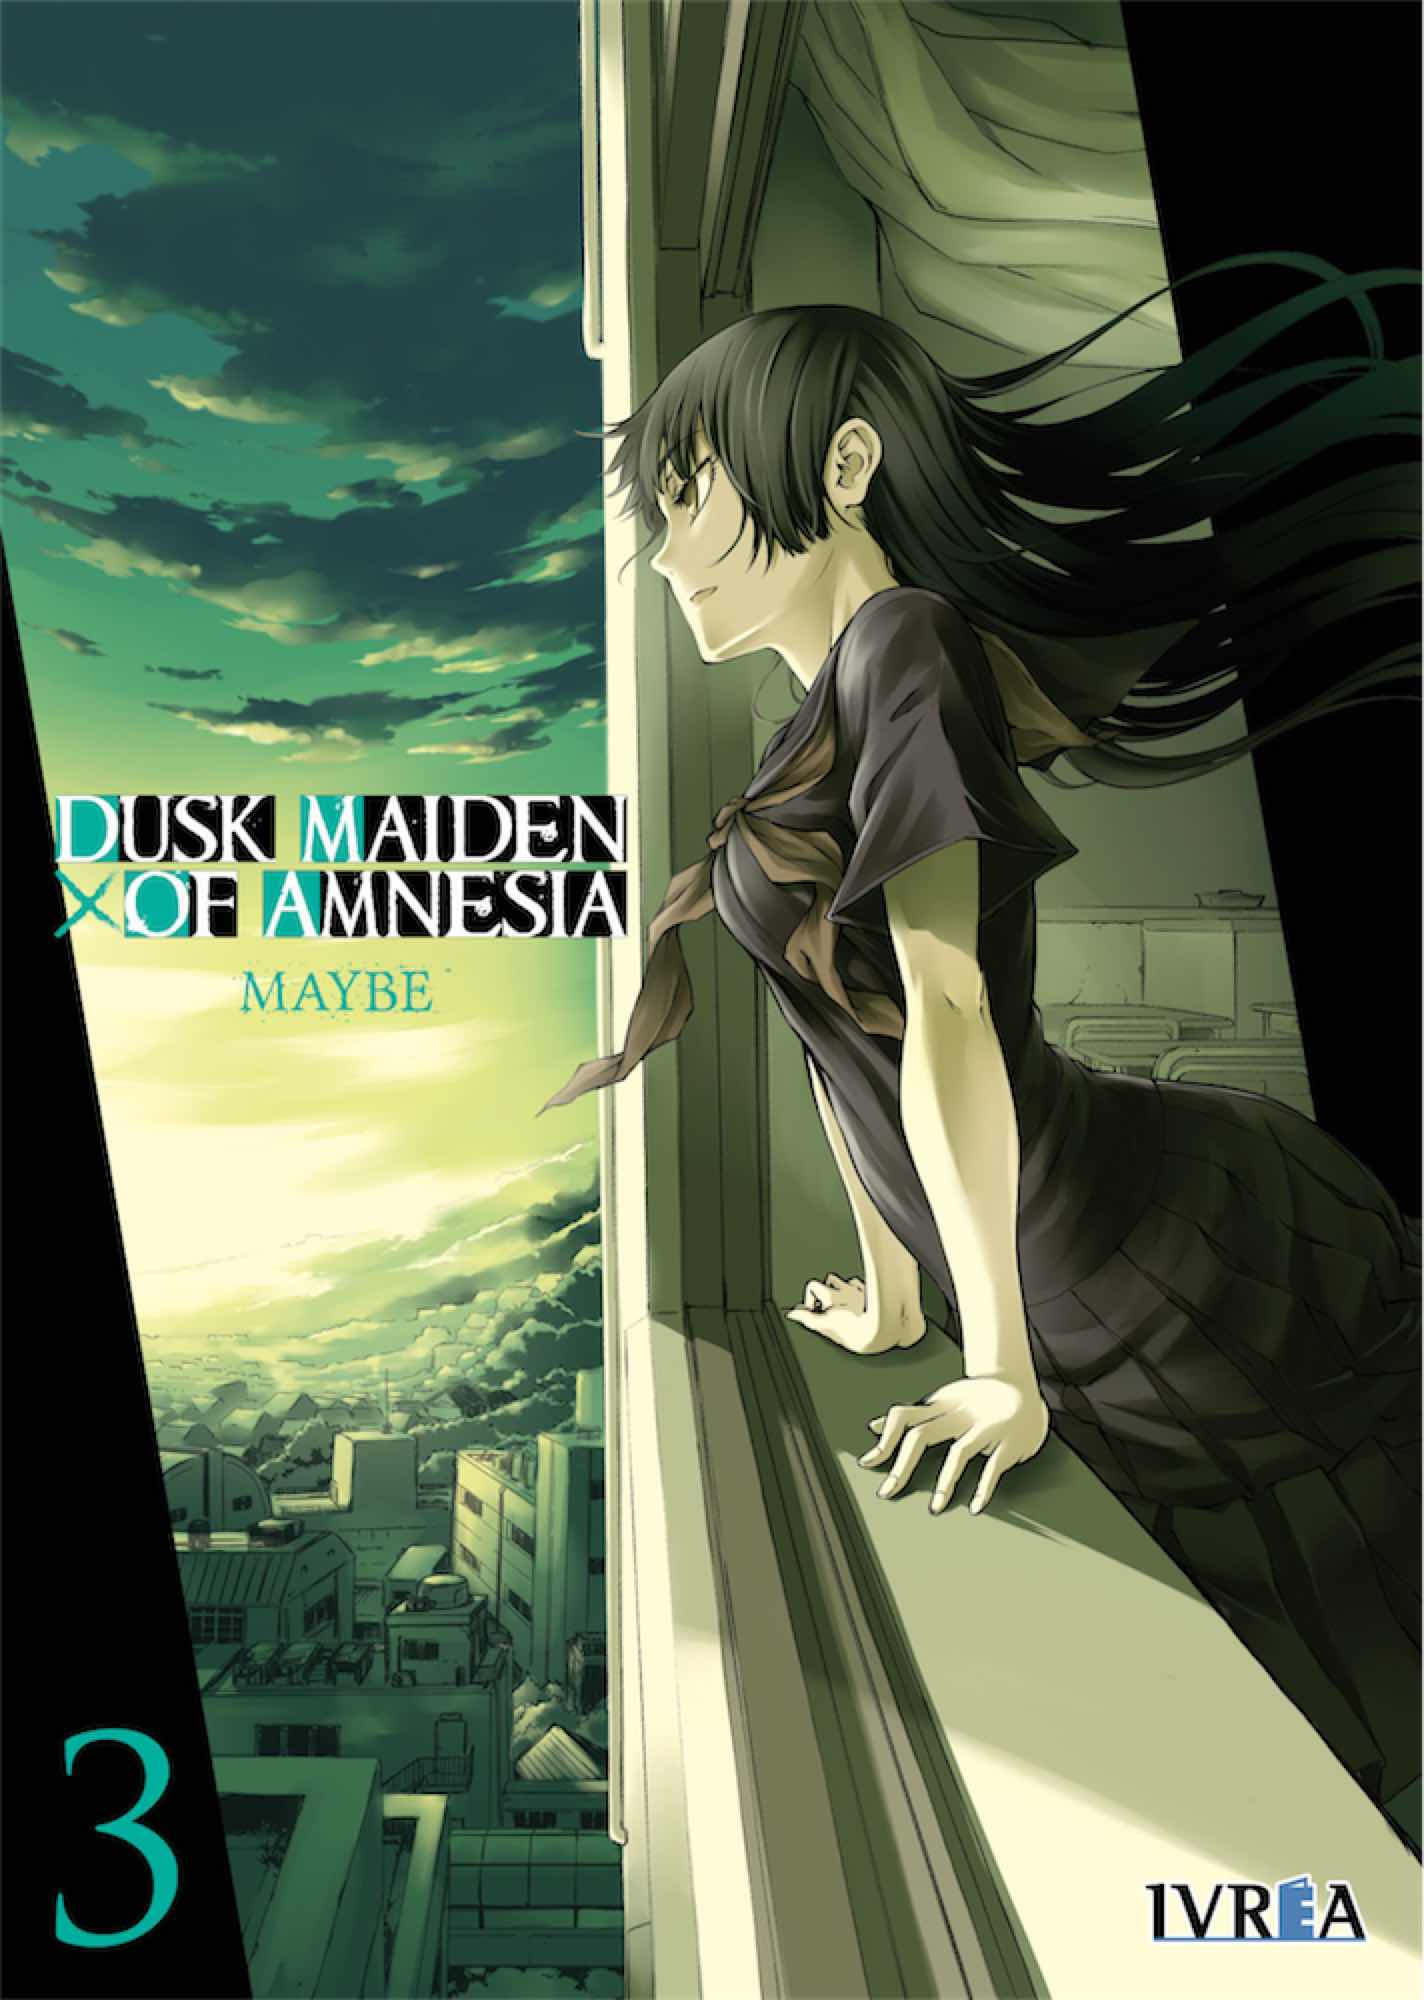 DUSK MAIDEN OF AMNESIA 03